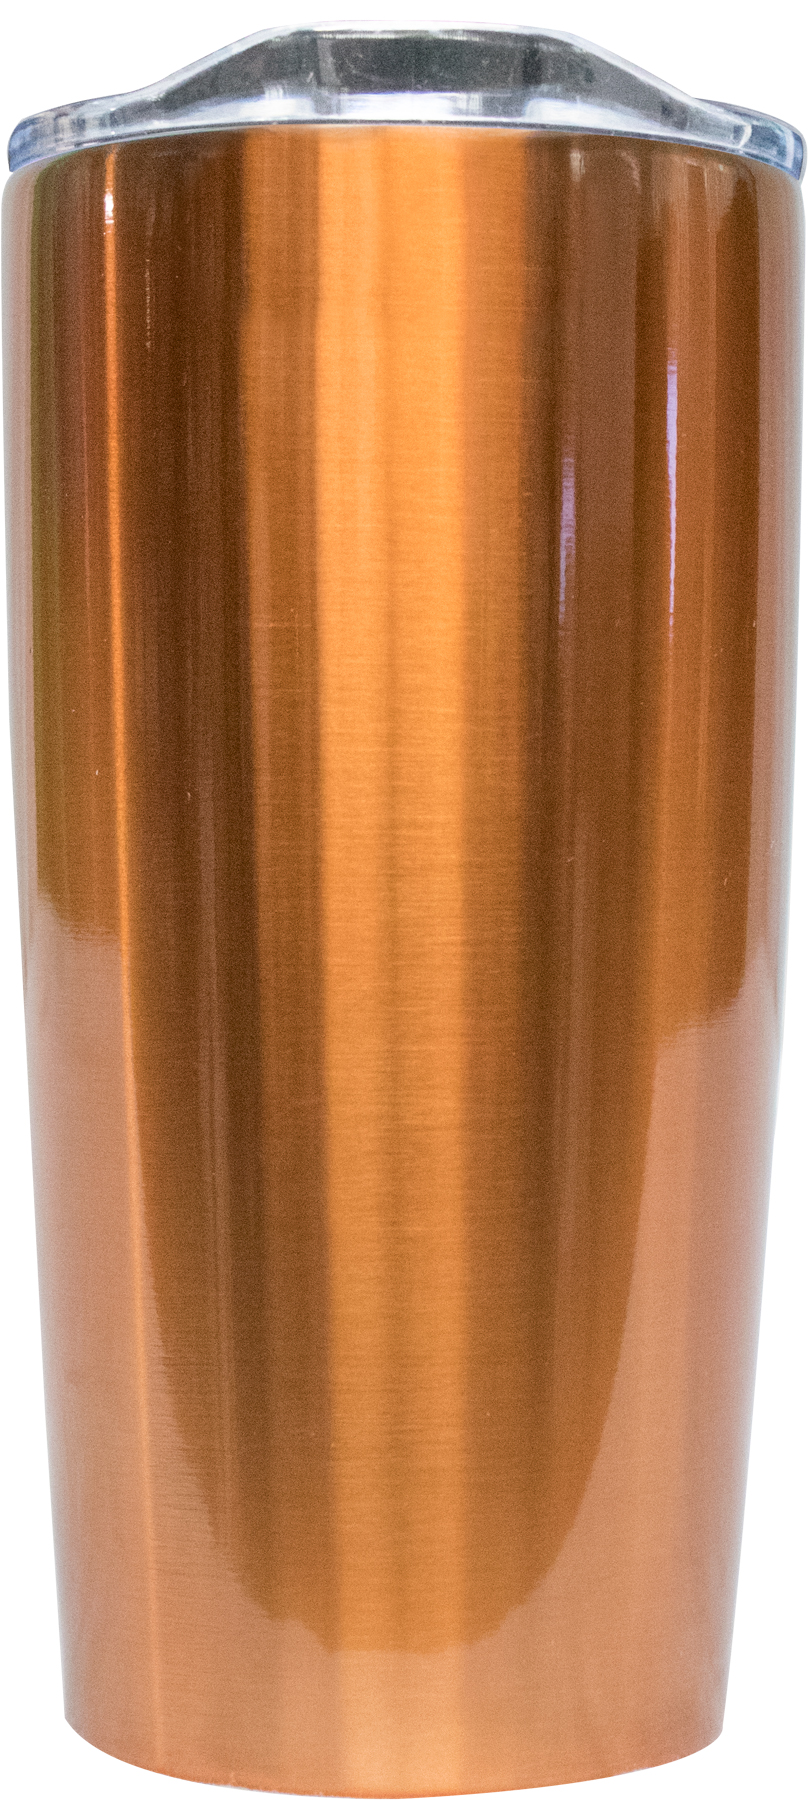 20oz Tumbler Blank - Copper